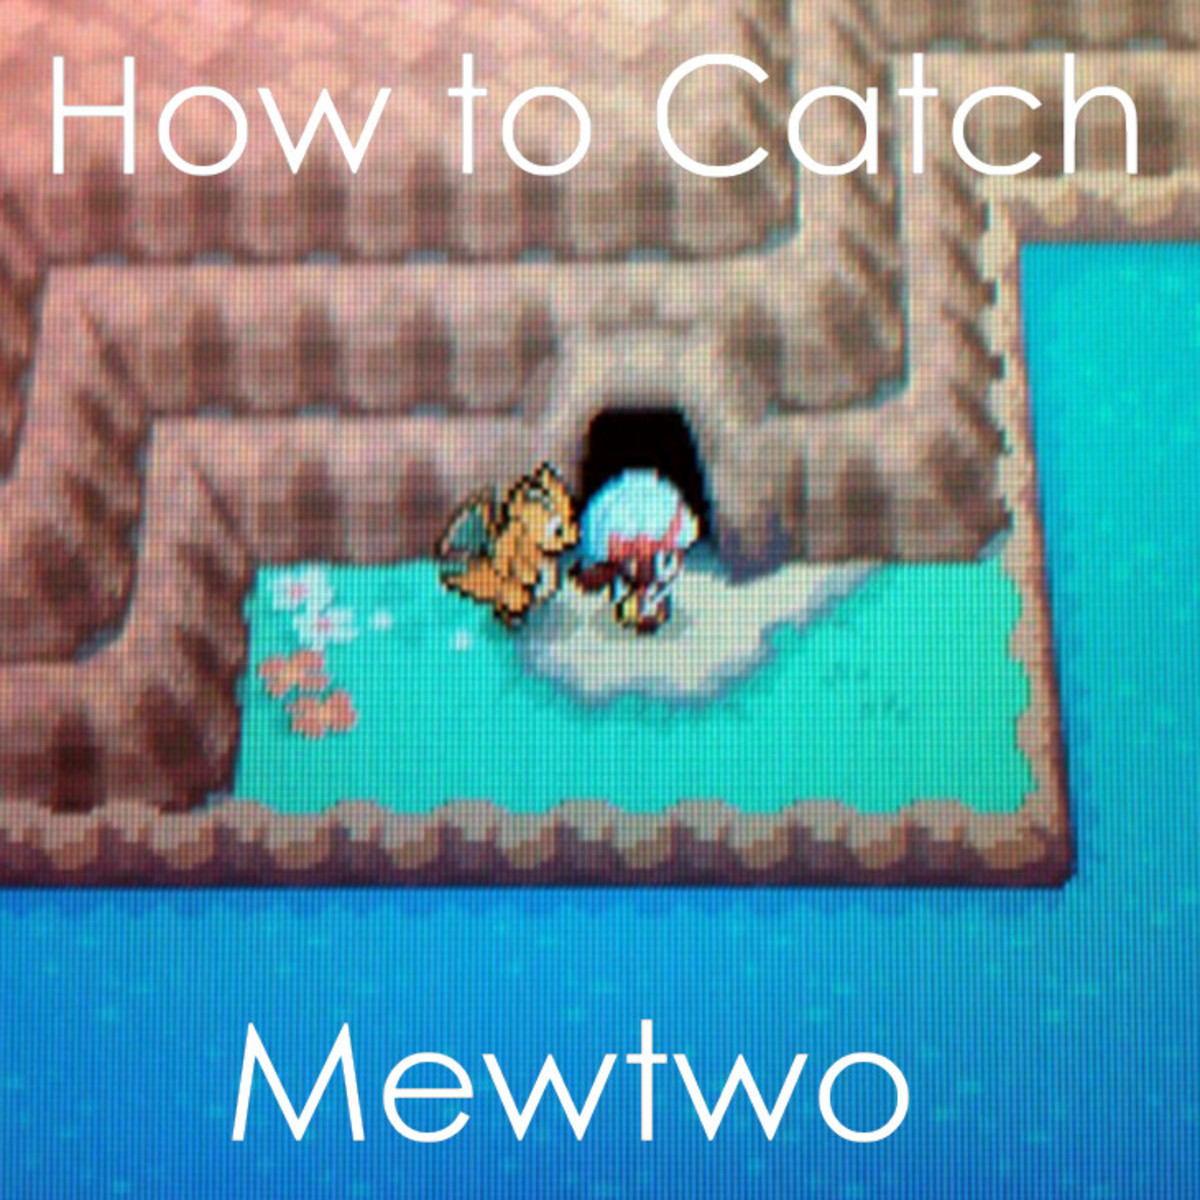 Learn how and where to catch Mewtwo with suggested Pokemon moves and more.